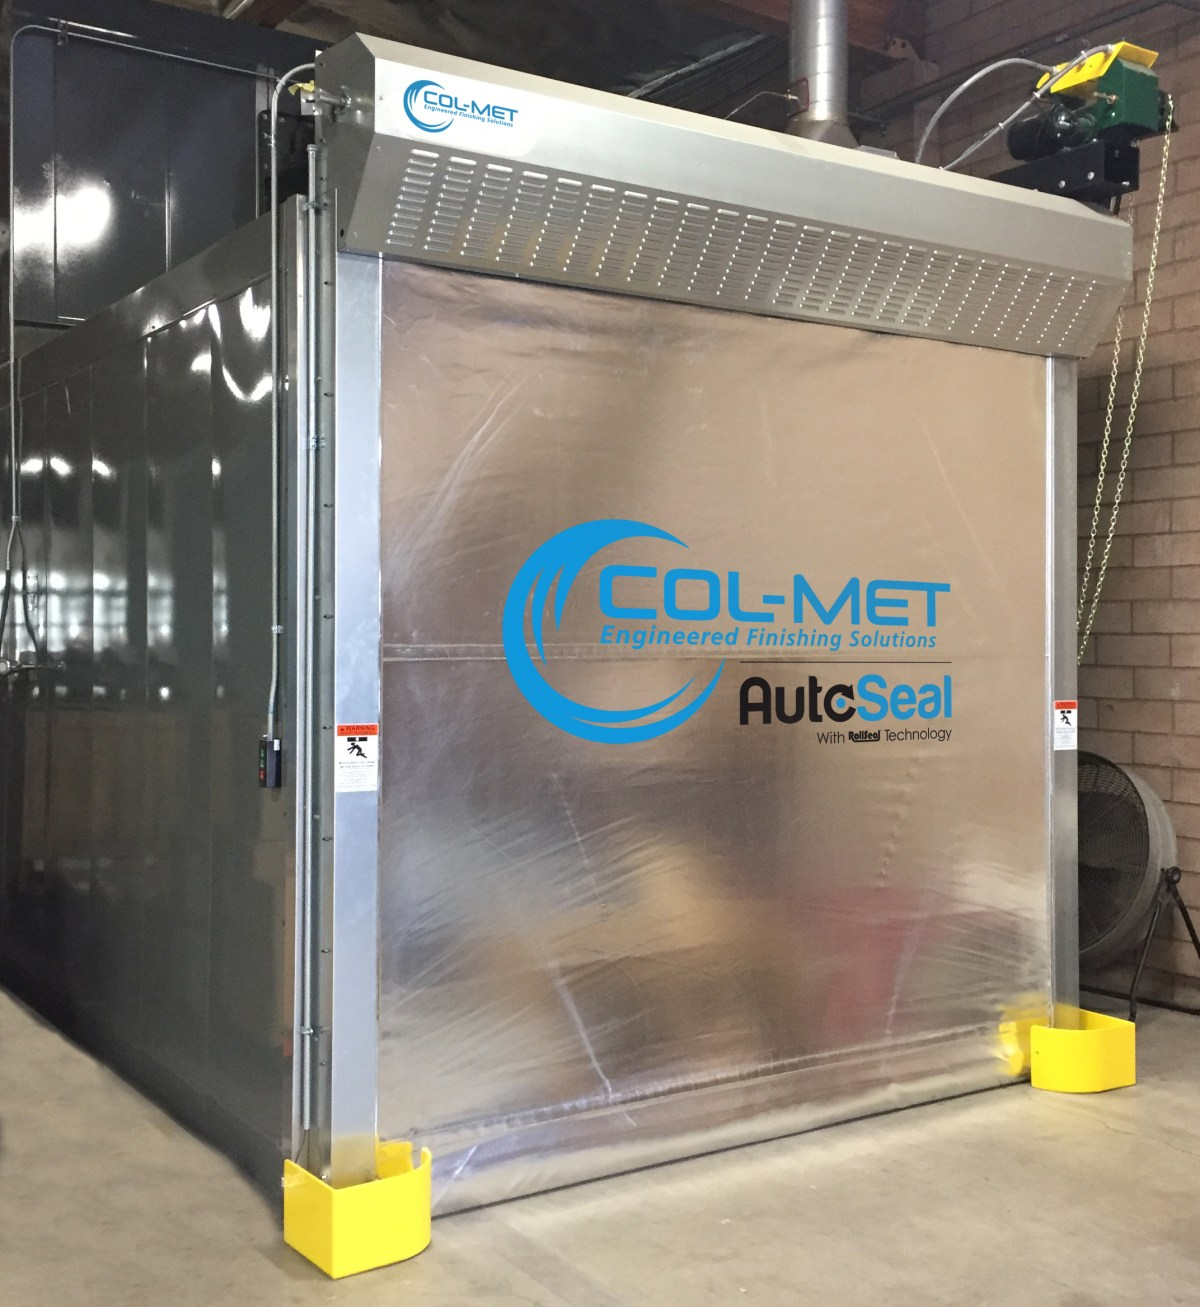 AutoSeal Batch Oven Roll Up Door From Col-Met